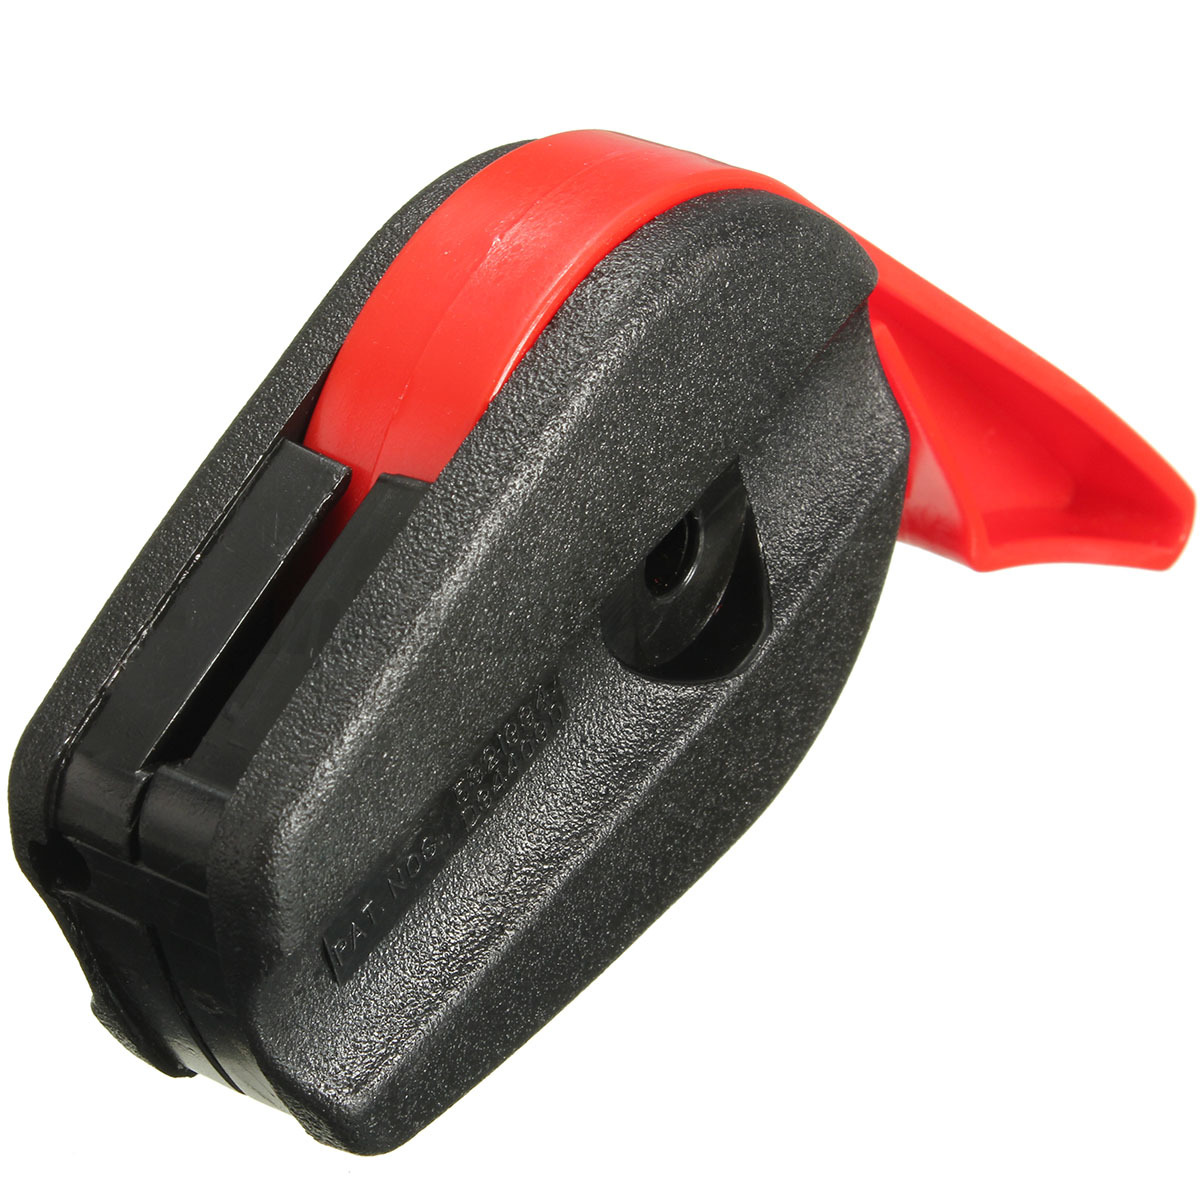 Throttle Control Lever Cable : Universal  throttle cable switch lever control handle